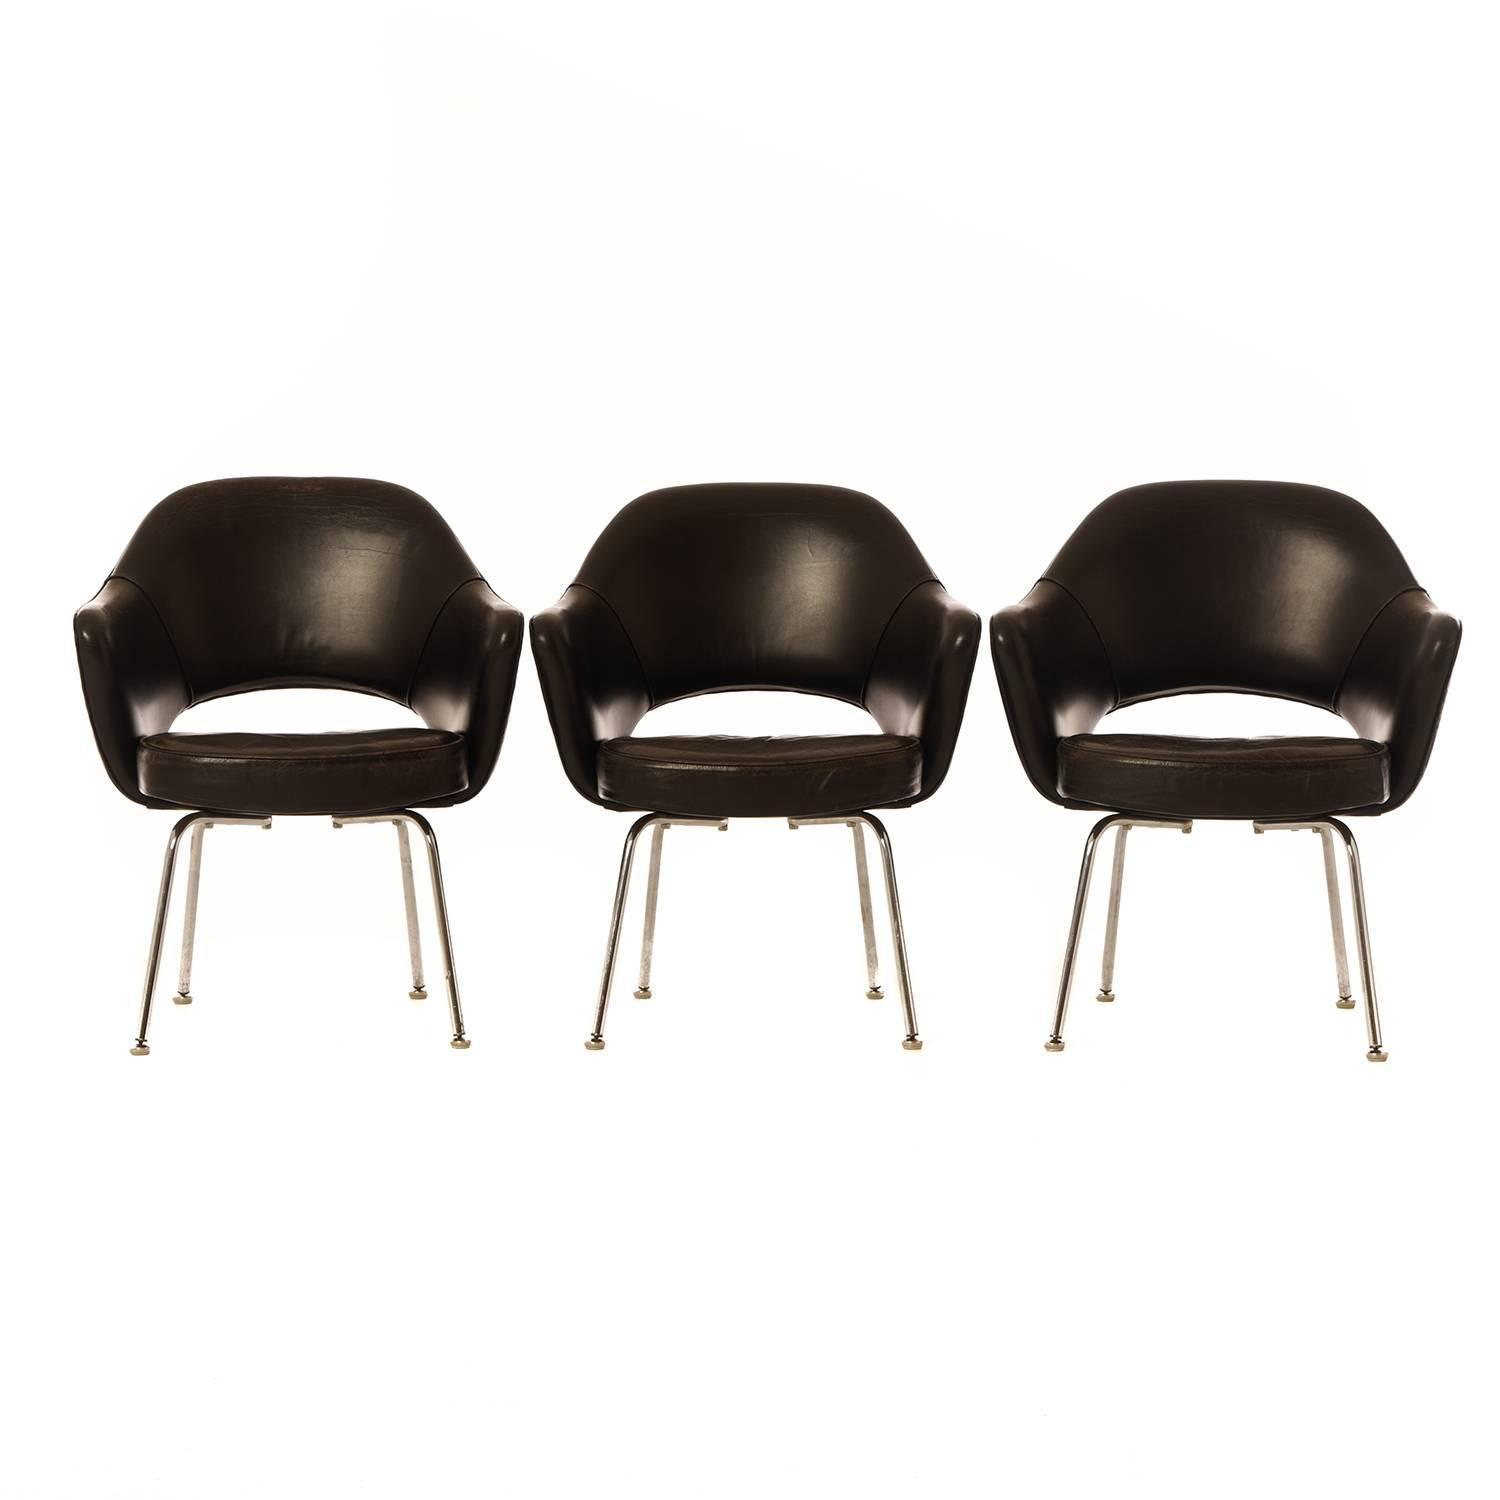 Danish Modern Saarinen Executive Chairs For Sale At 1stdibs